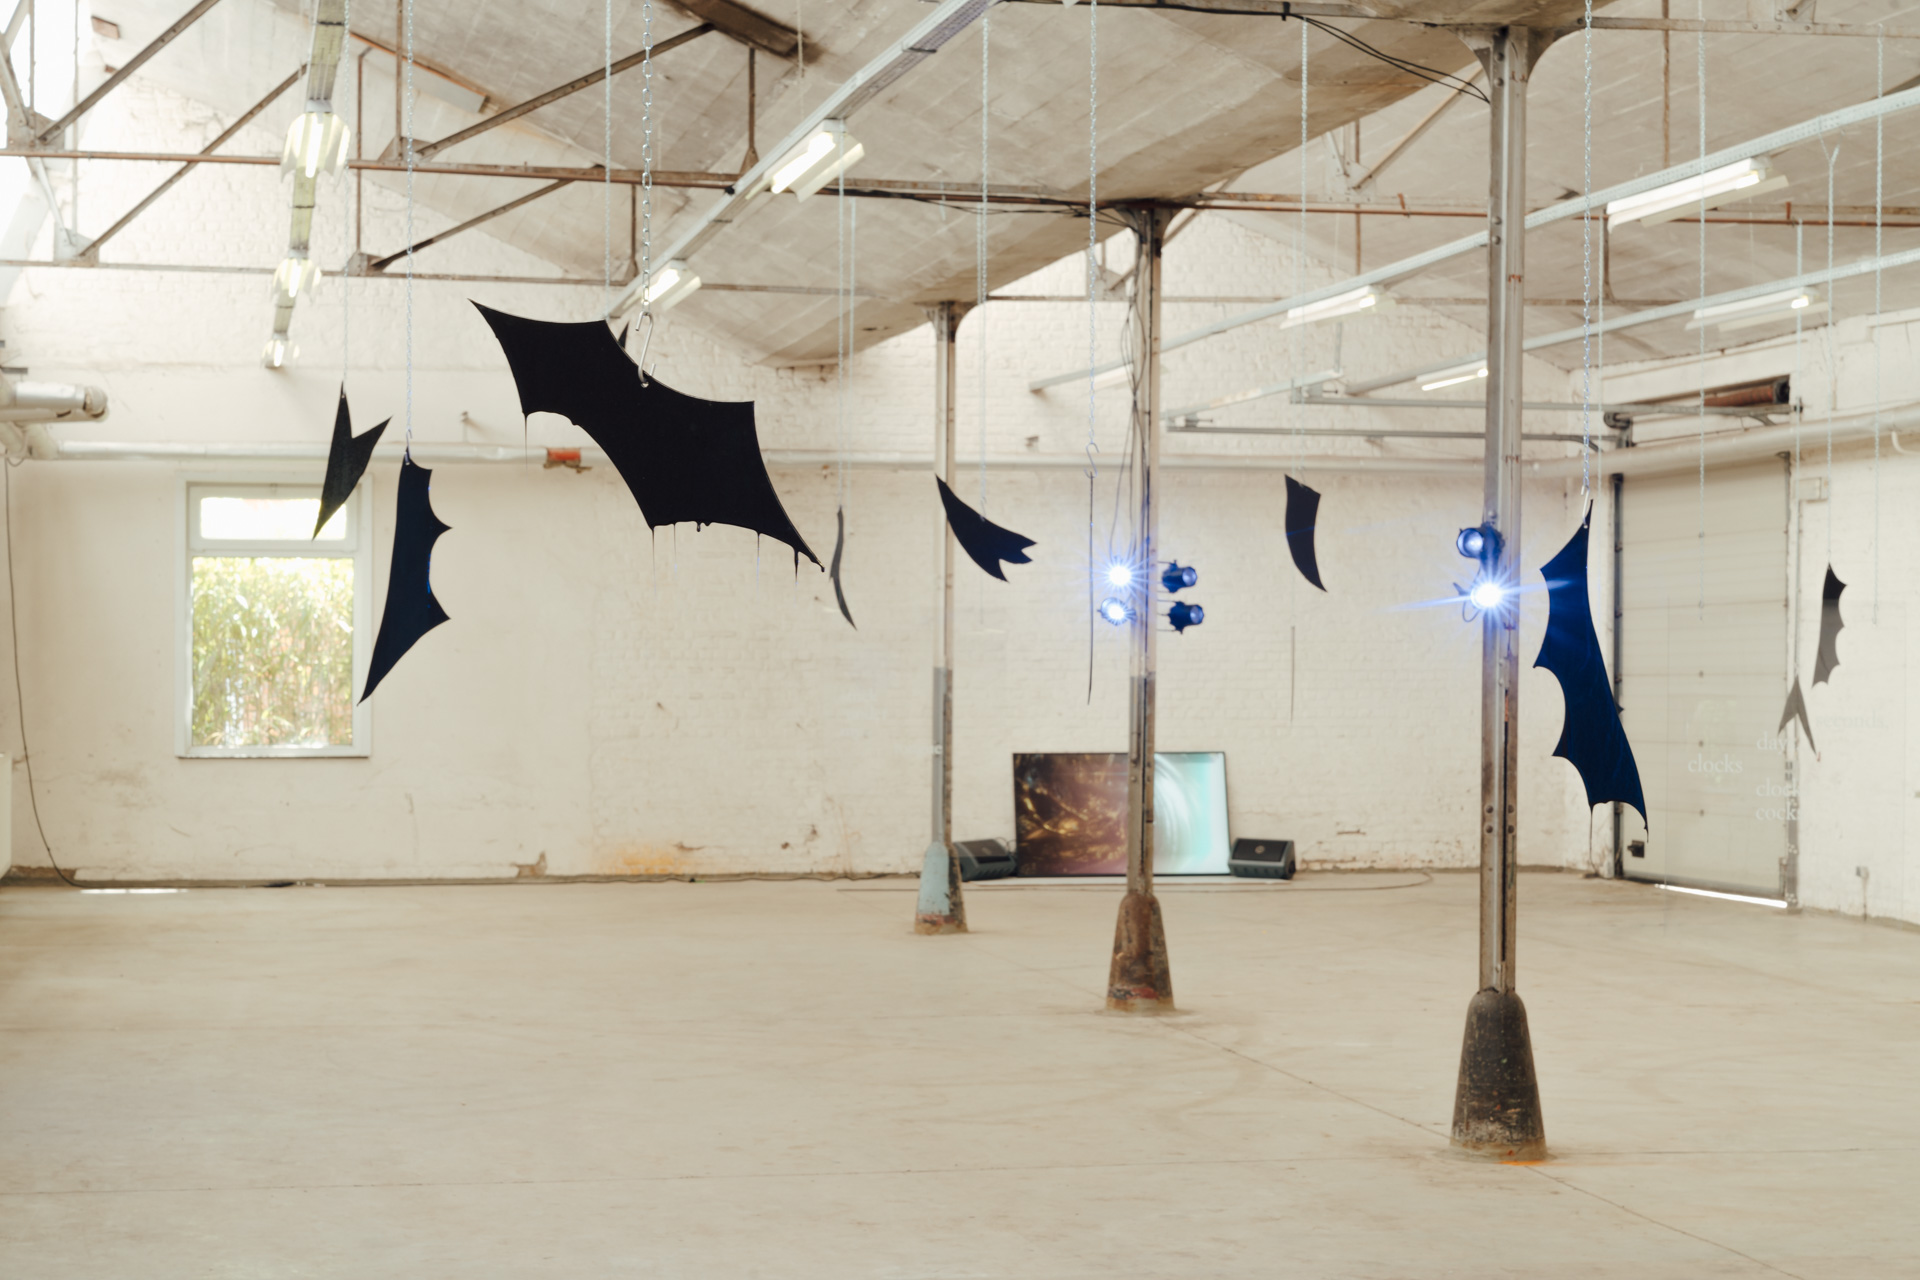 Tarek Lakhrissi, Flying on the raven's wing, 2021. Installation view. HORST Festival, Brussels, BE. Photographer: Illias Teirlinck.